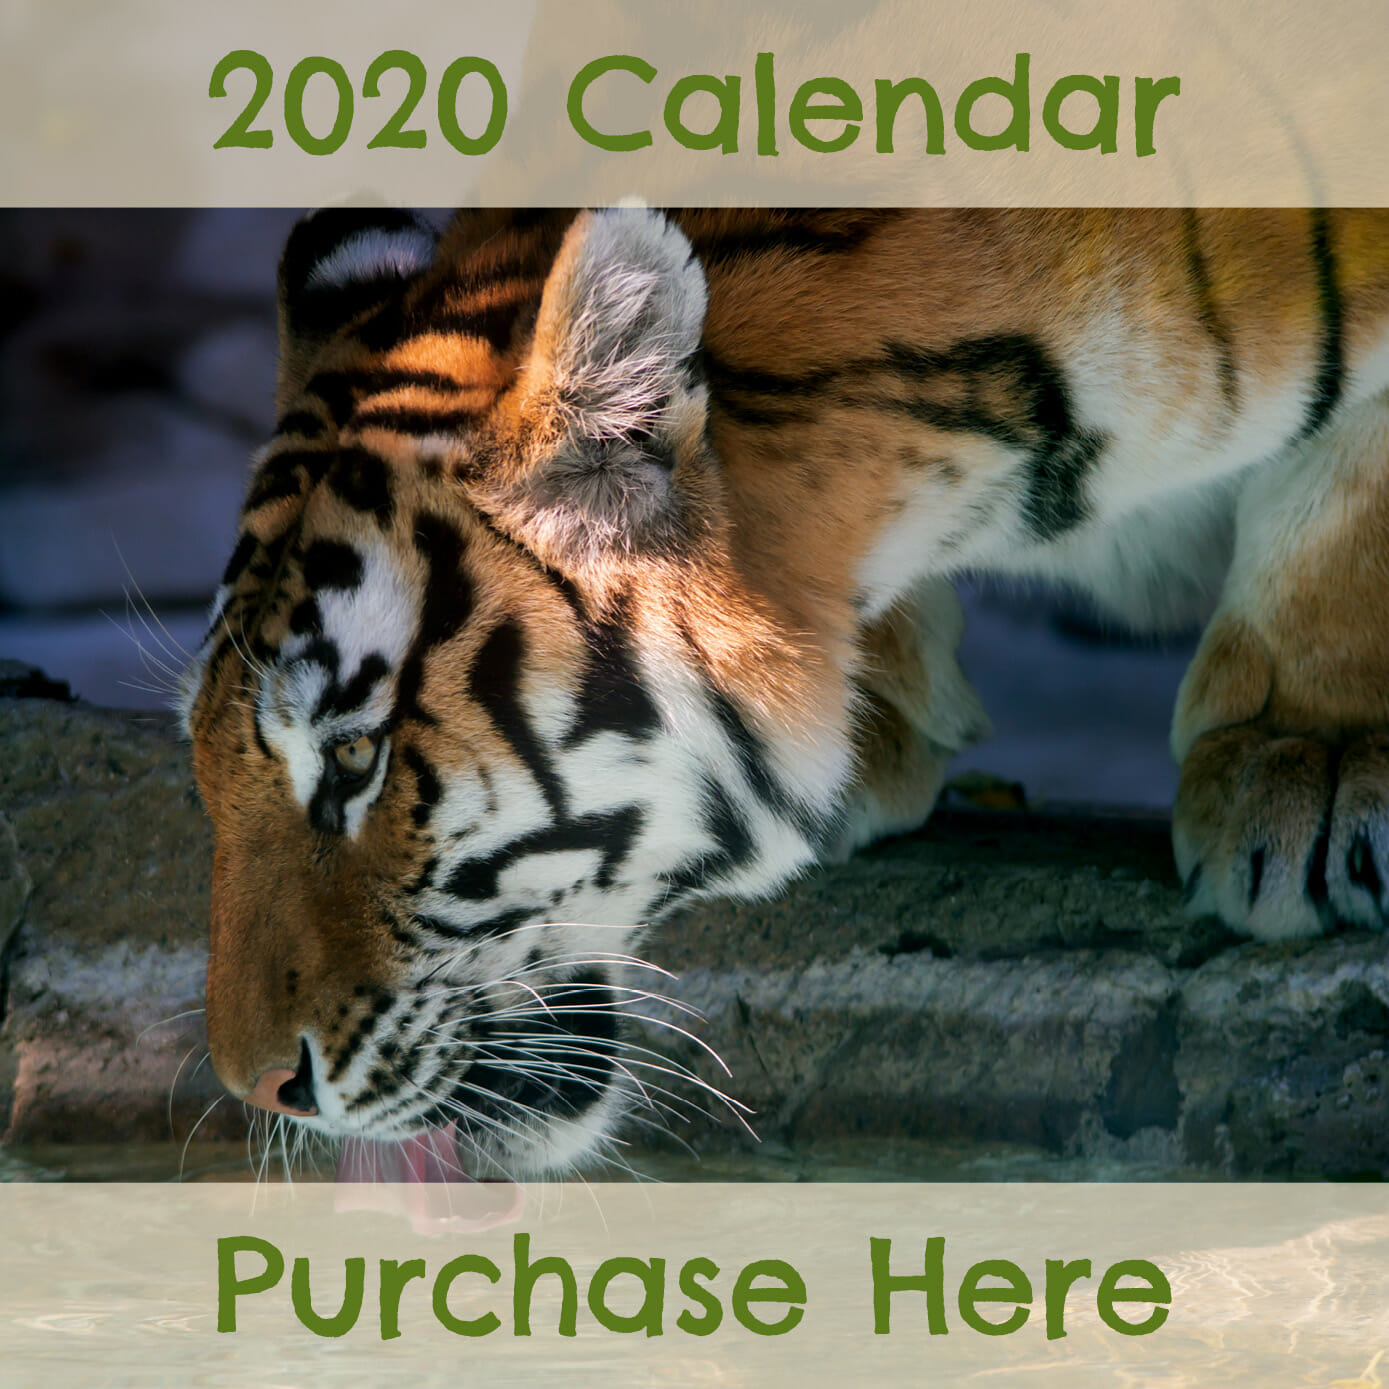 purchase the 2020 conservation calendar